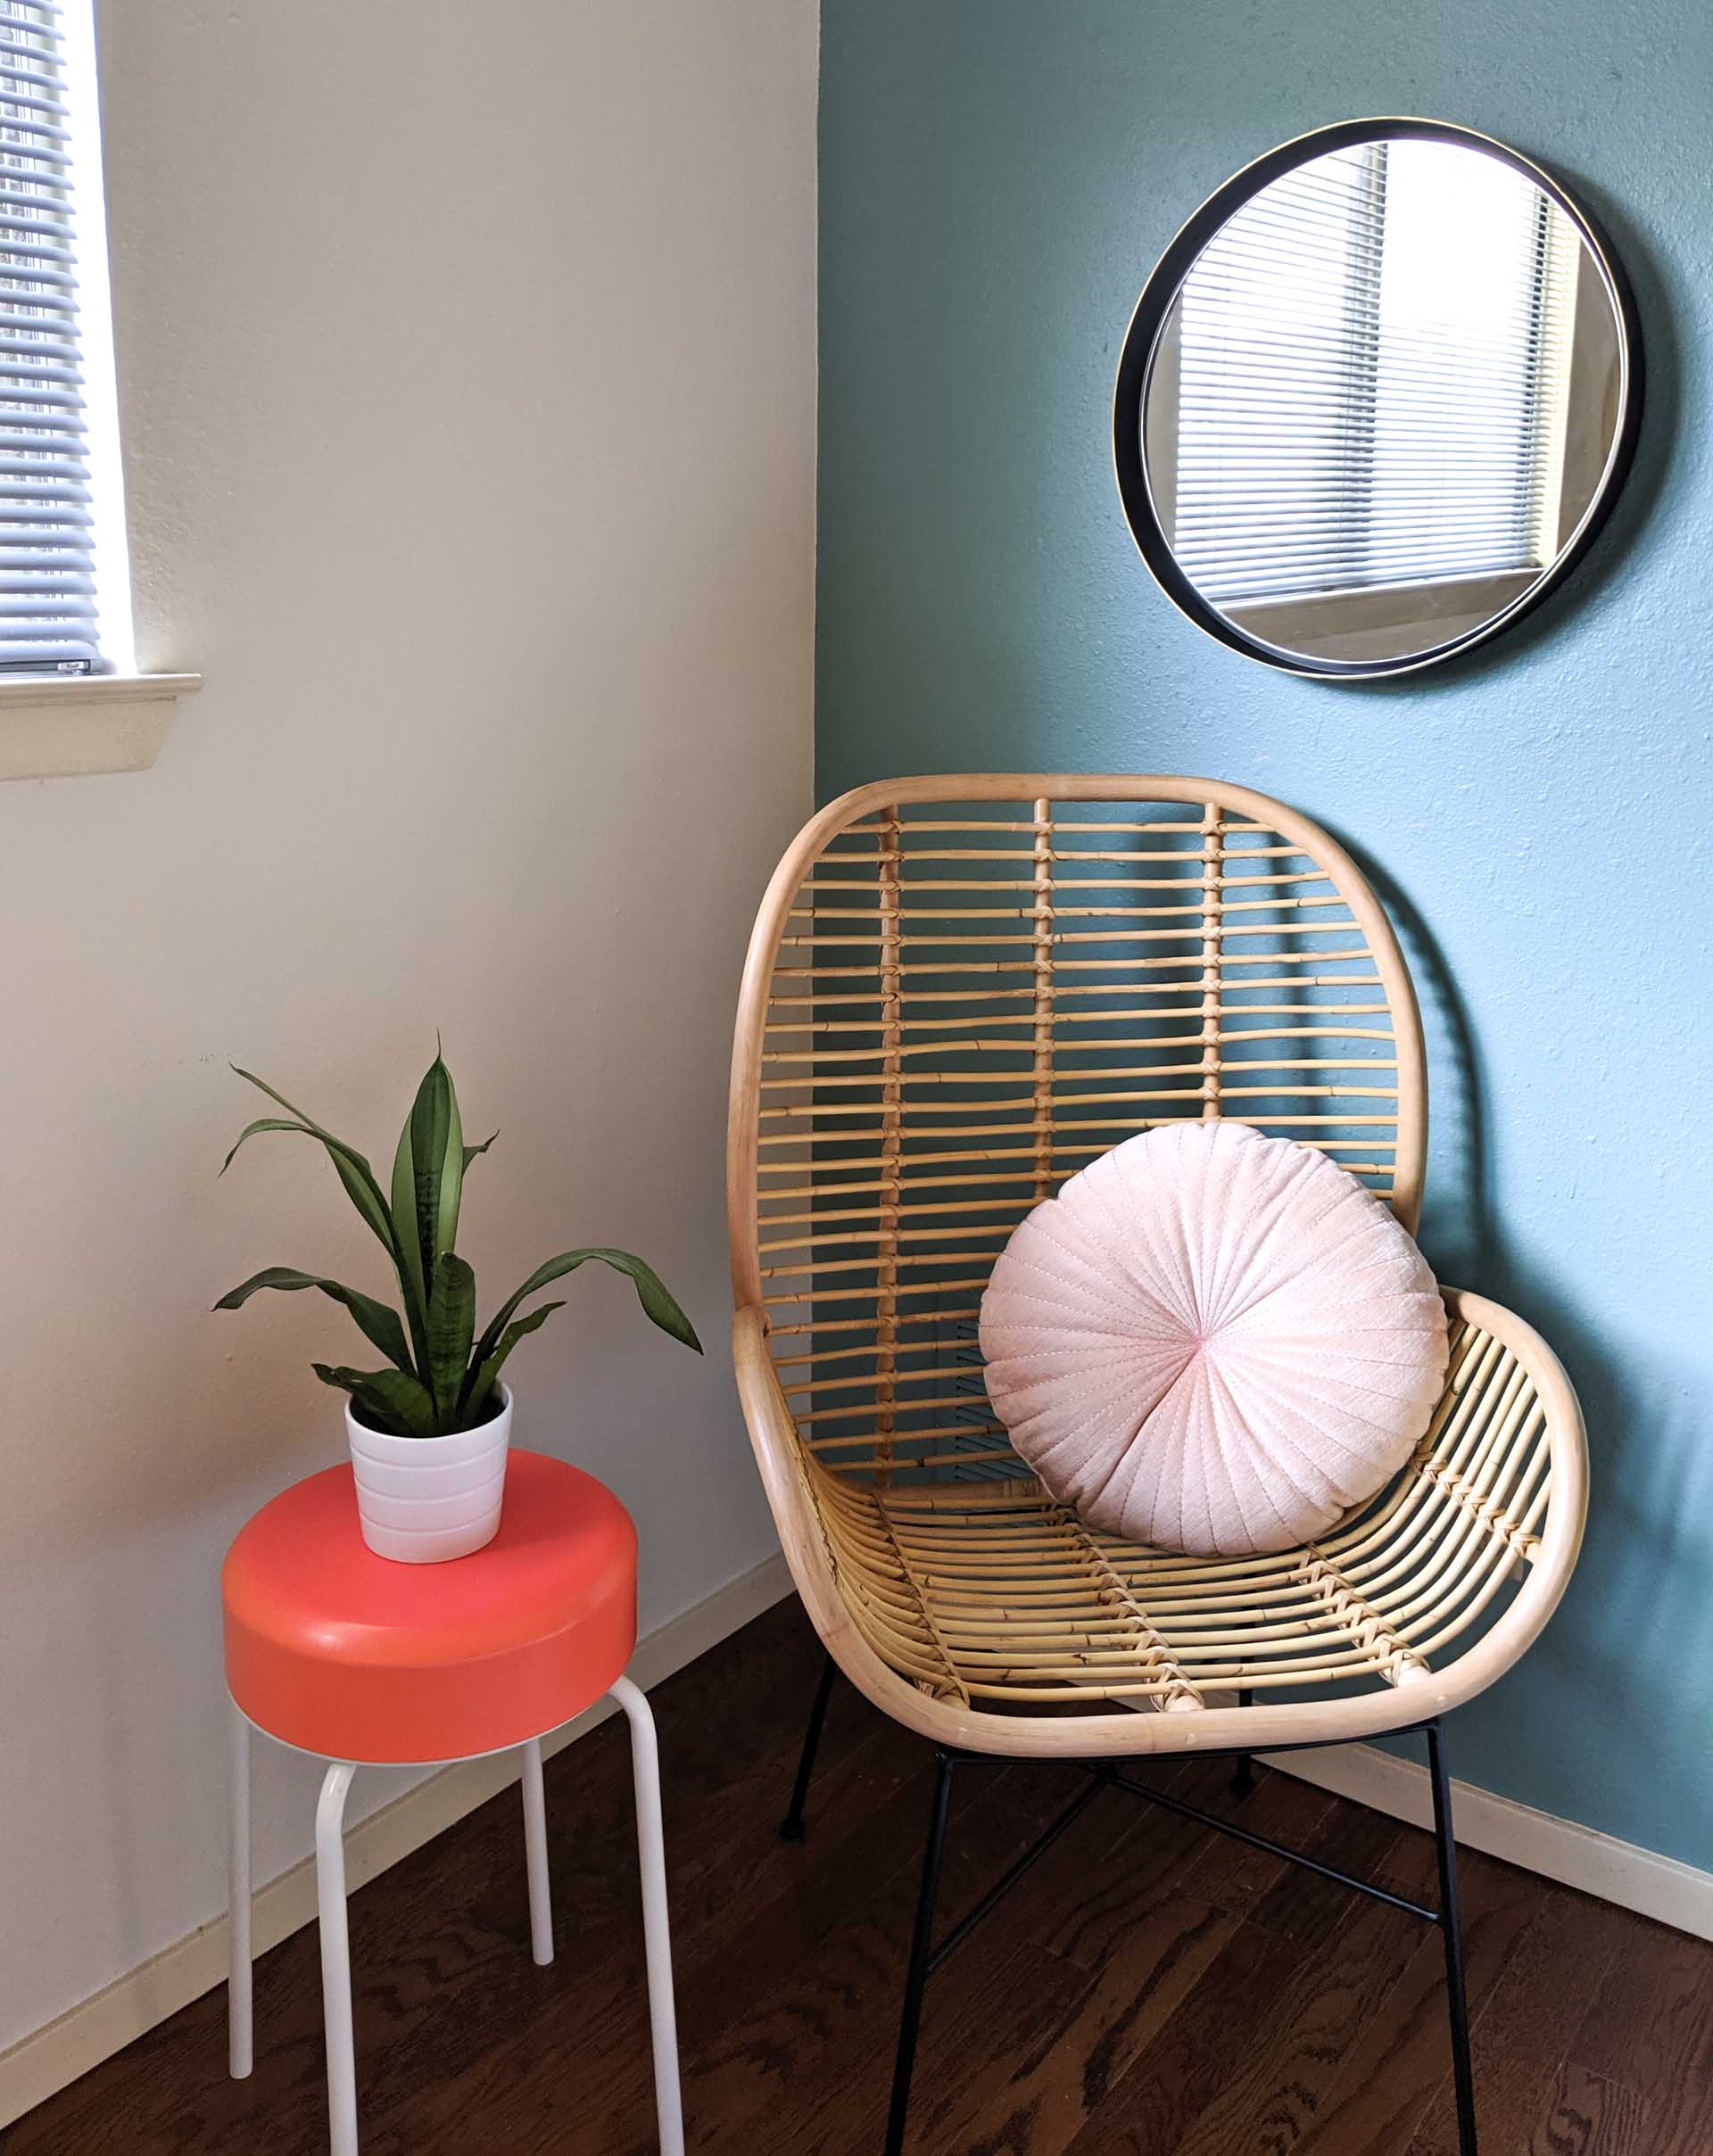 Rattan chair with a scalloped pillow